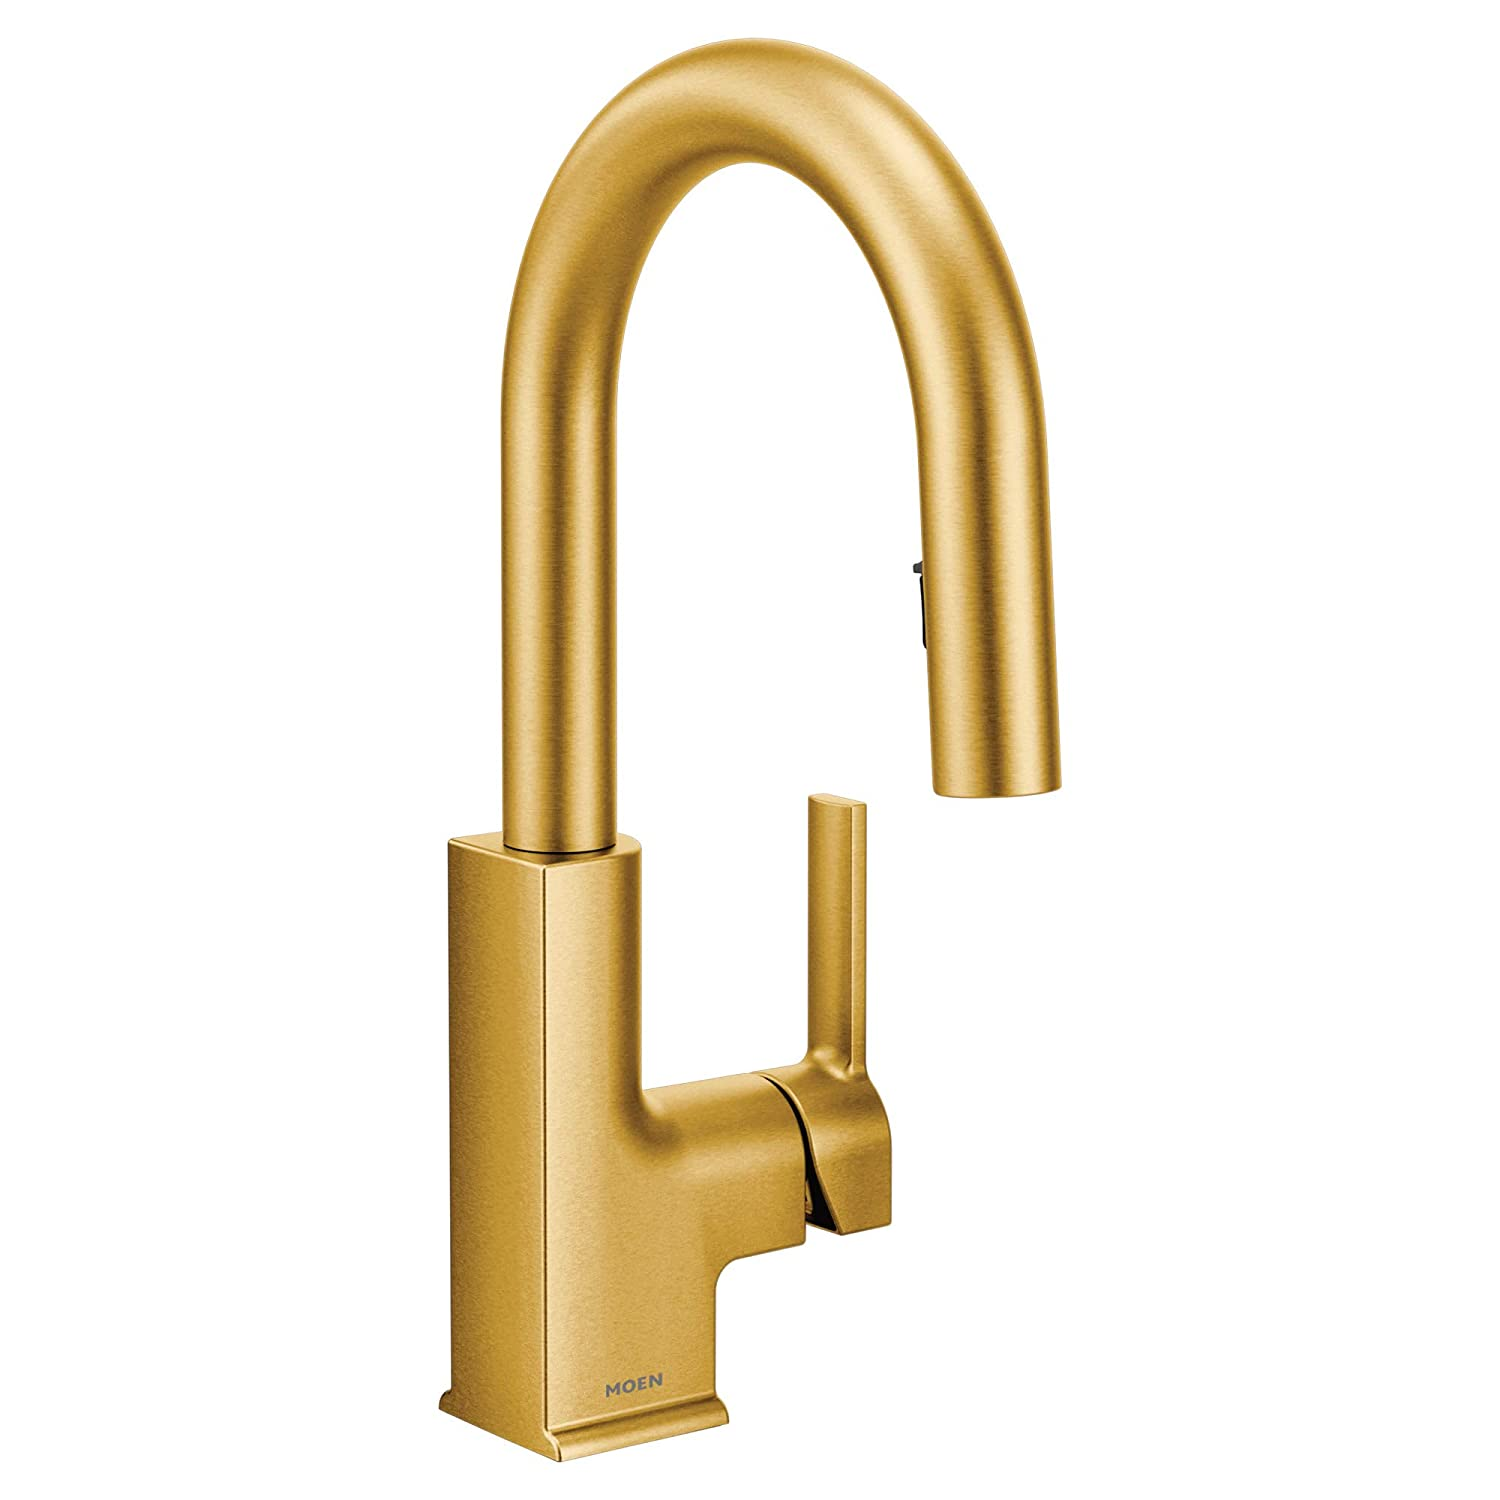 Moen S62308BG STo Collection Bar Faucet Brushed Gold